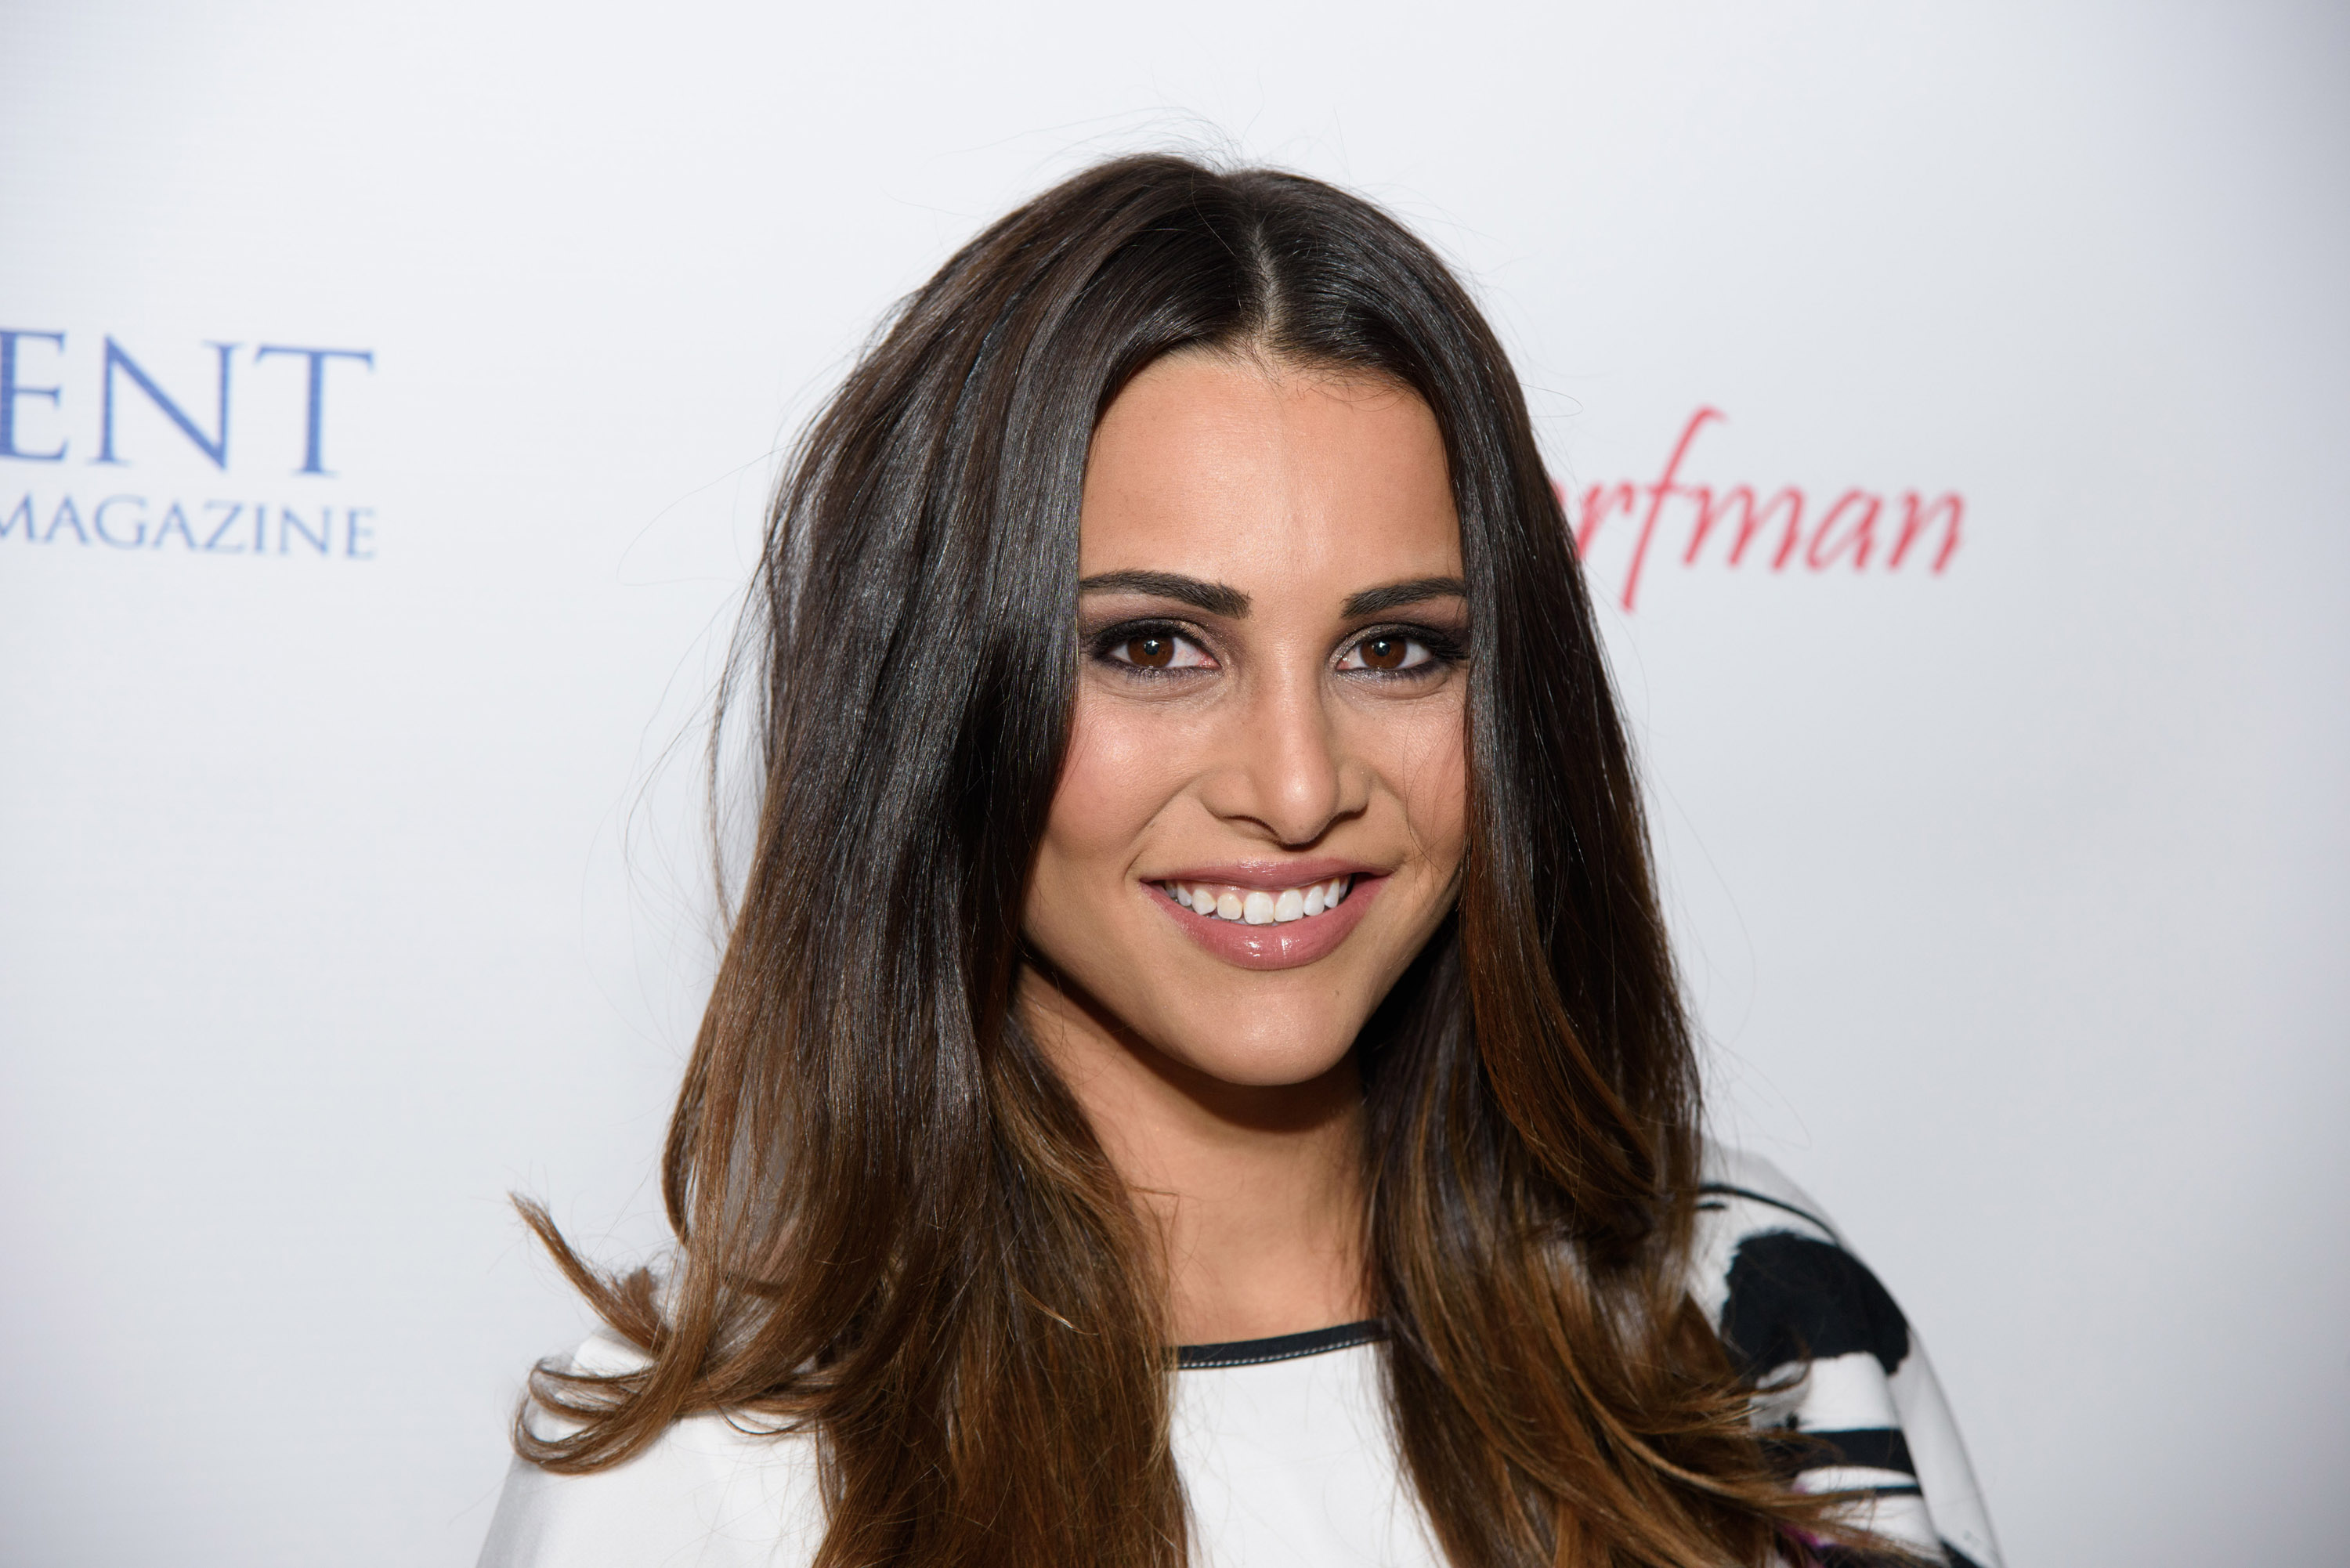 Andi Dorfman attends the Resident Magazine Celebrates August 2015 Cover Featuring Andi Dorfman  at Omar's on August 13, 2015 in New York City.